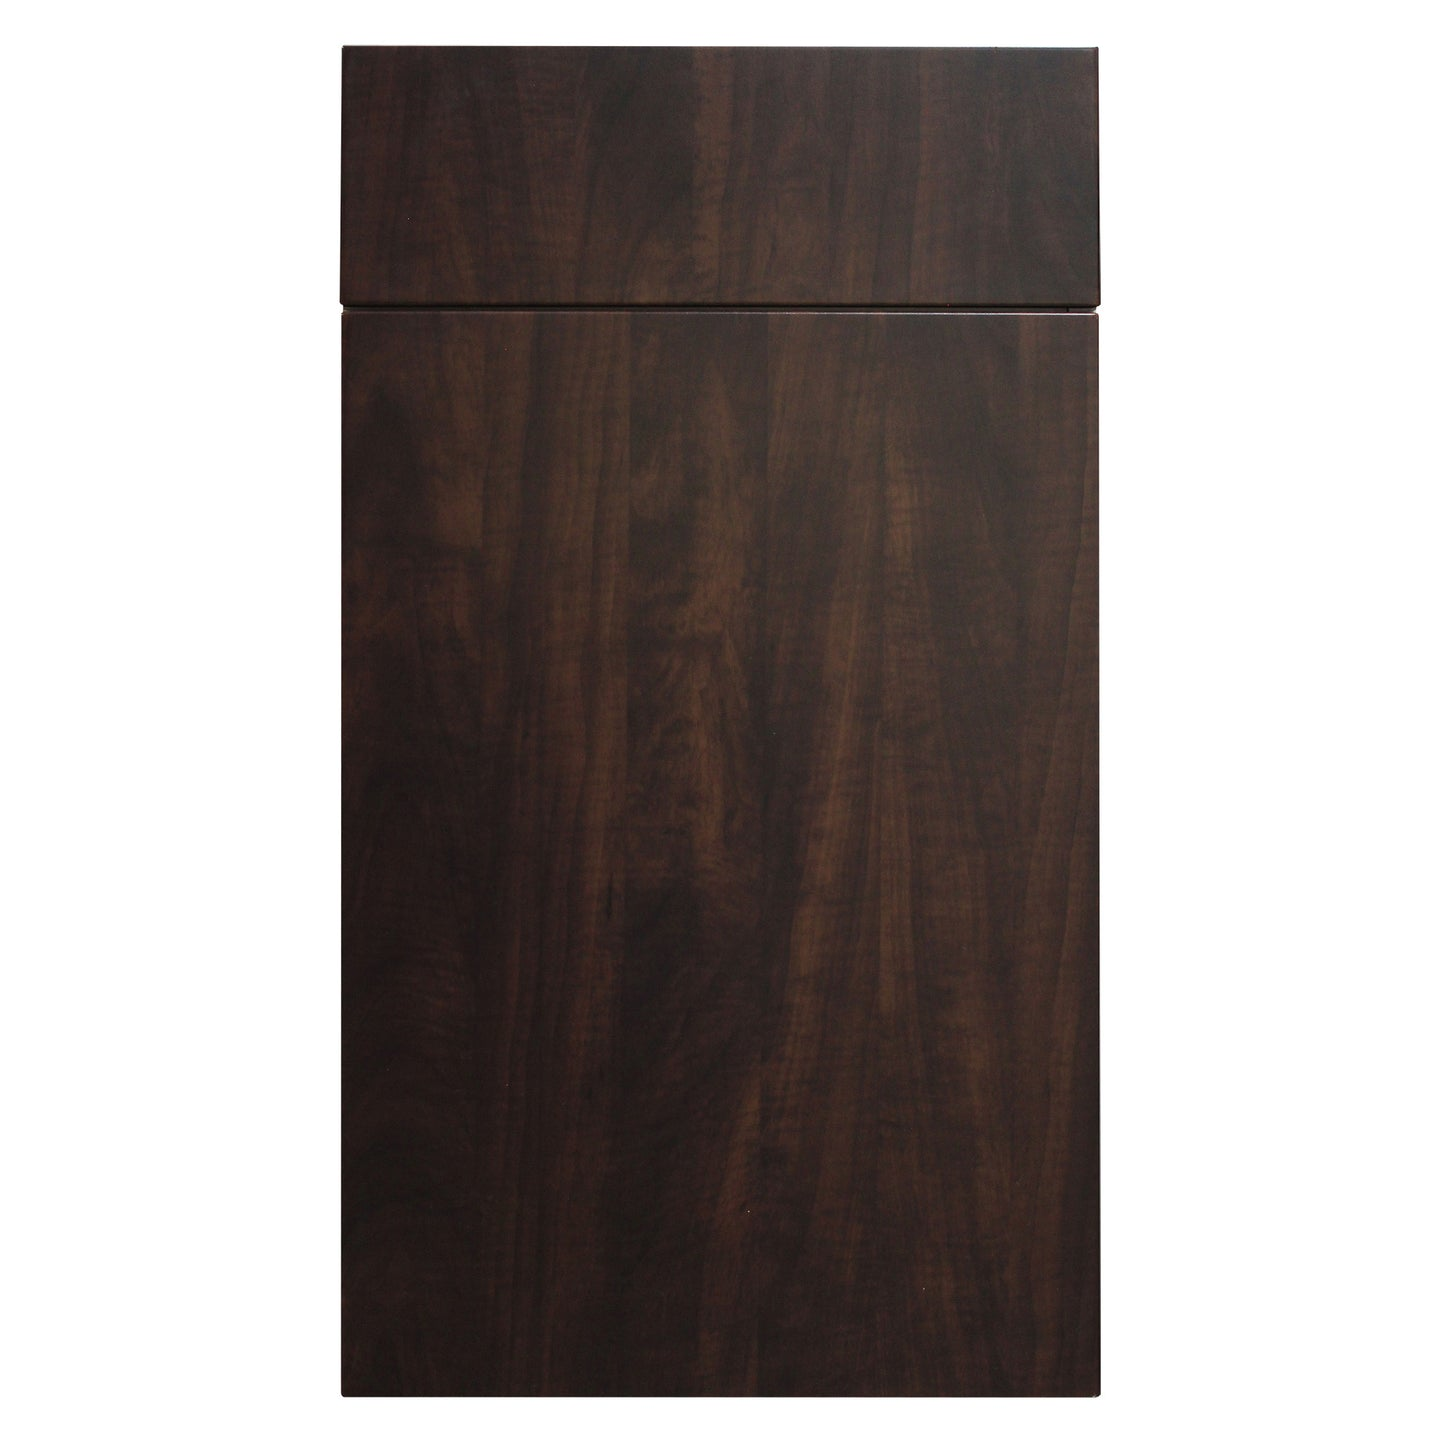 Dark Chocolate Wood Grain Kitchen Door - Quality Kitchens For Less